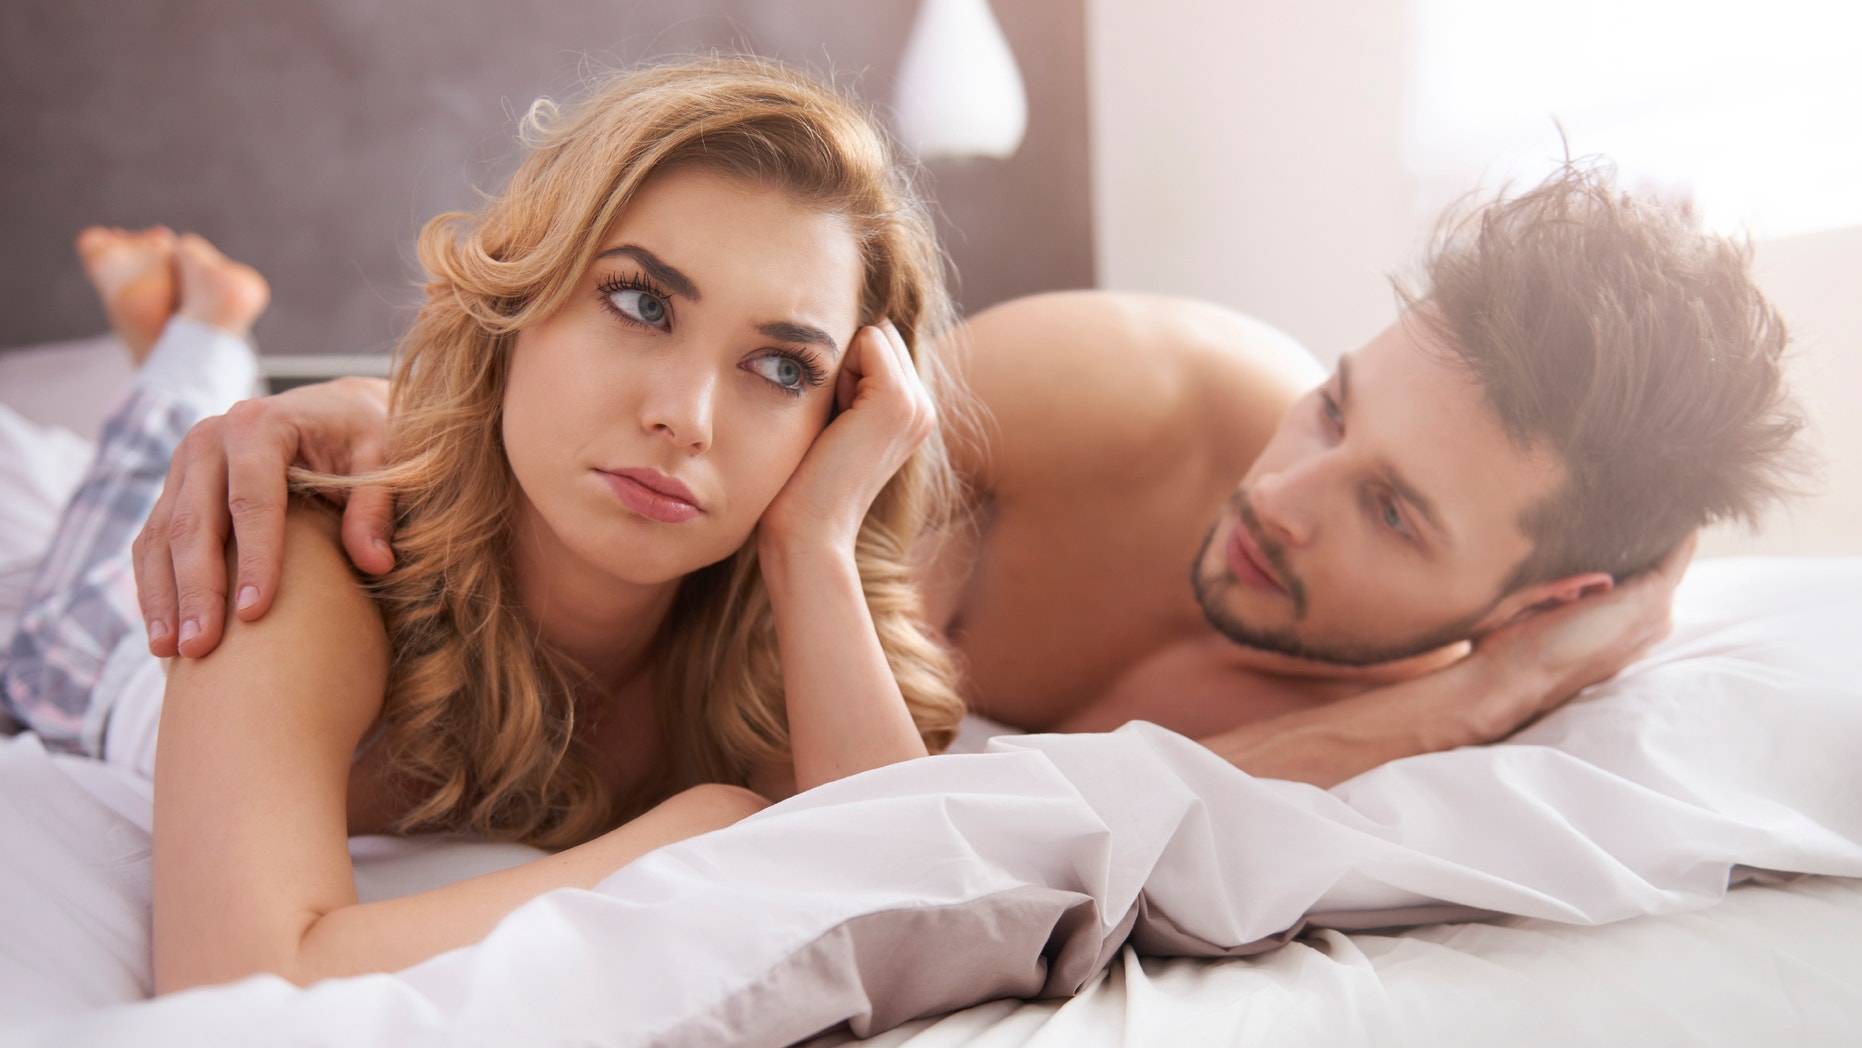 Married wanting just sex article